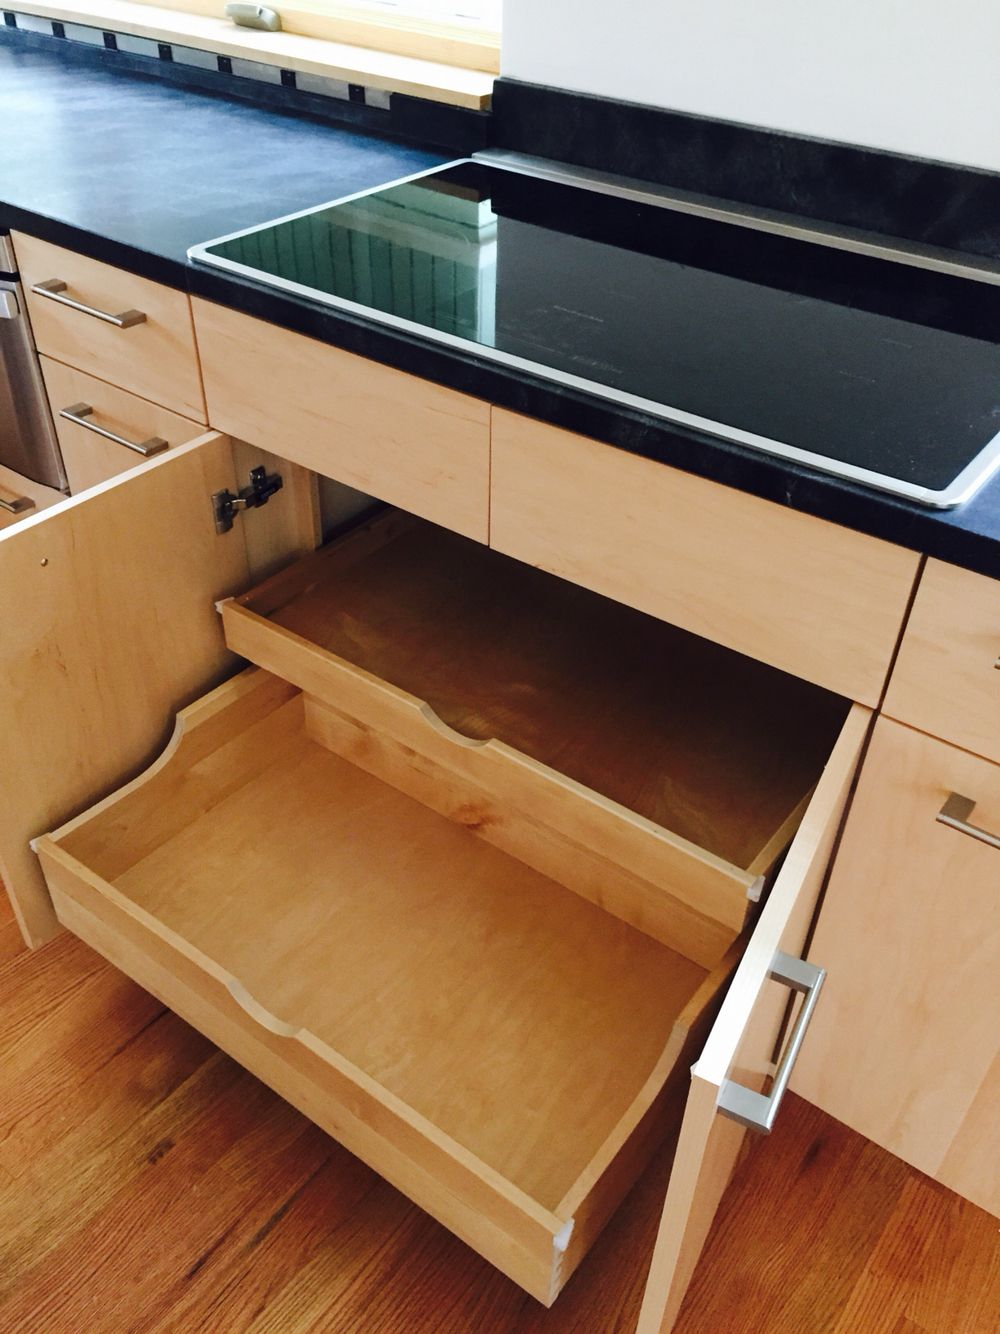 Shallow drawers to accommodate downdraft | LuxeMark Kitchens and ...